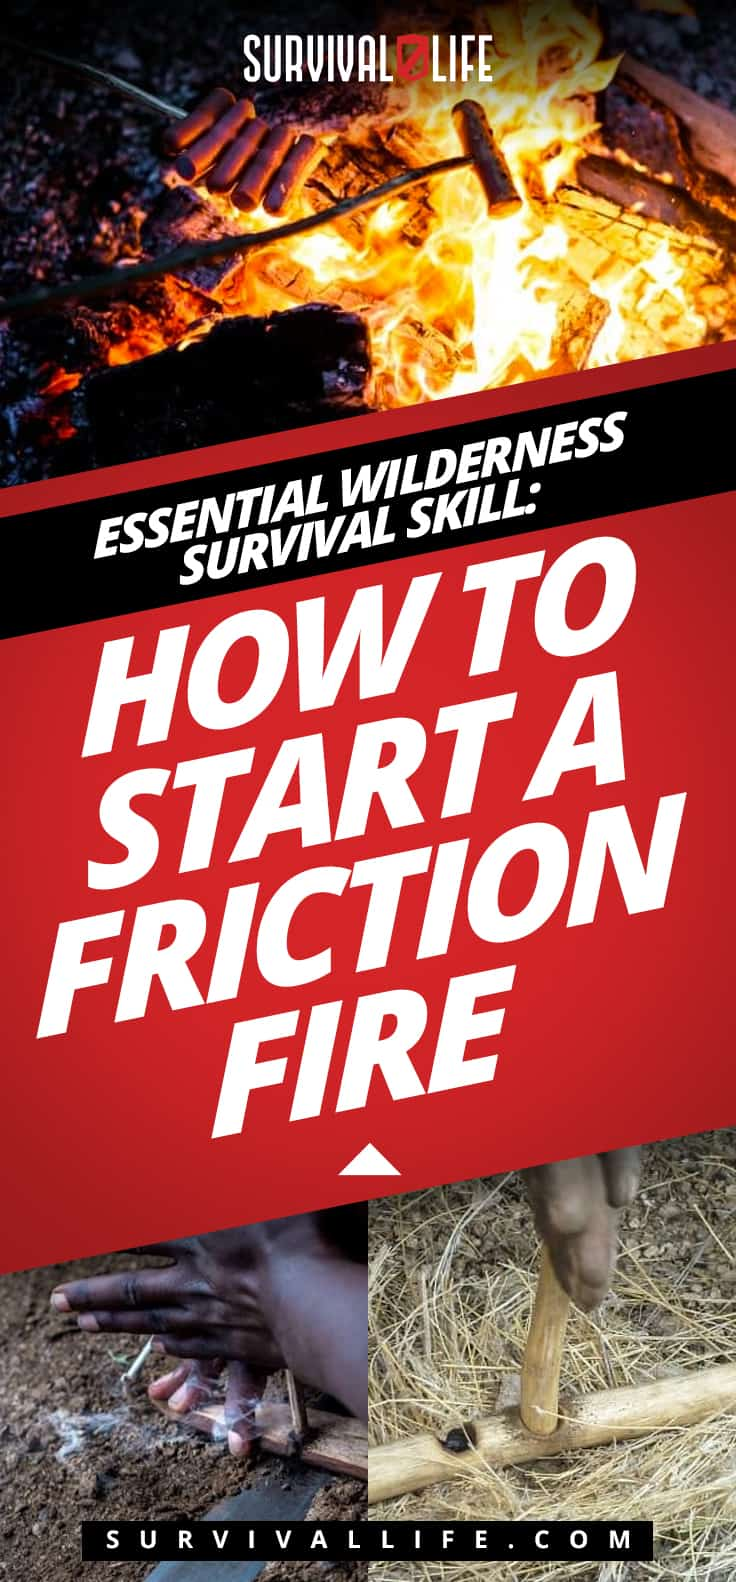 Essential Wilderness Survival Skill: How to Start a Friction Fire